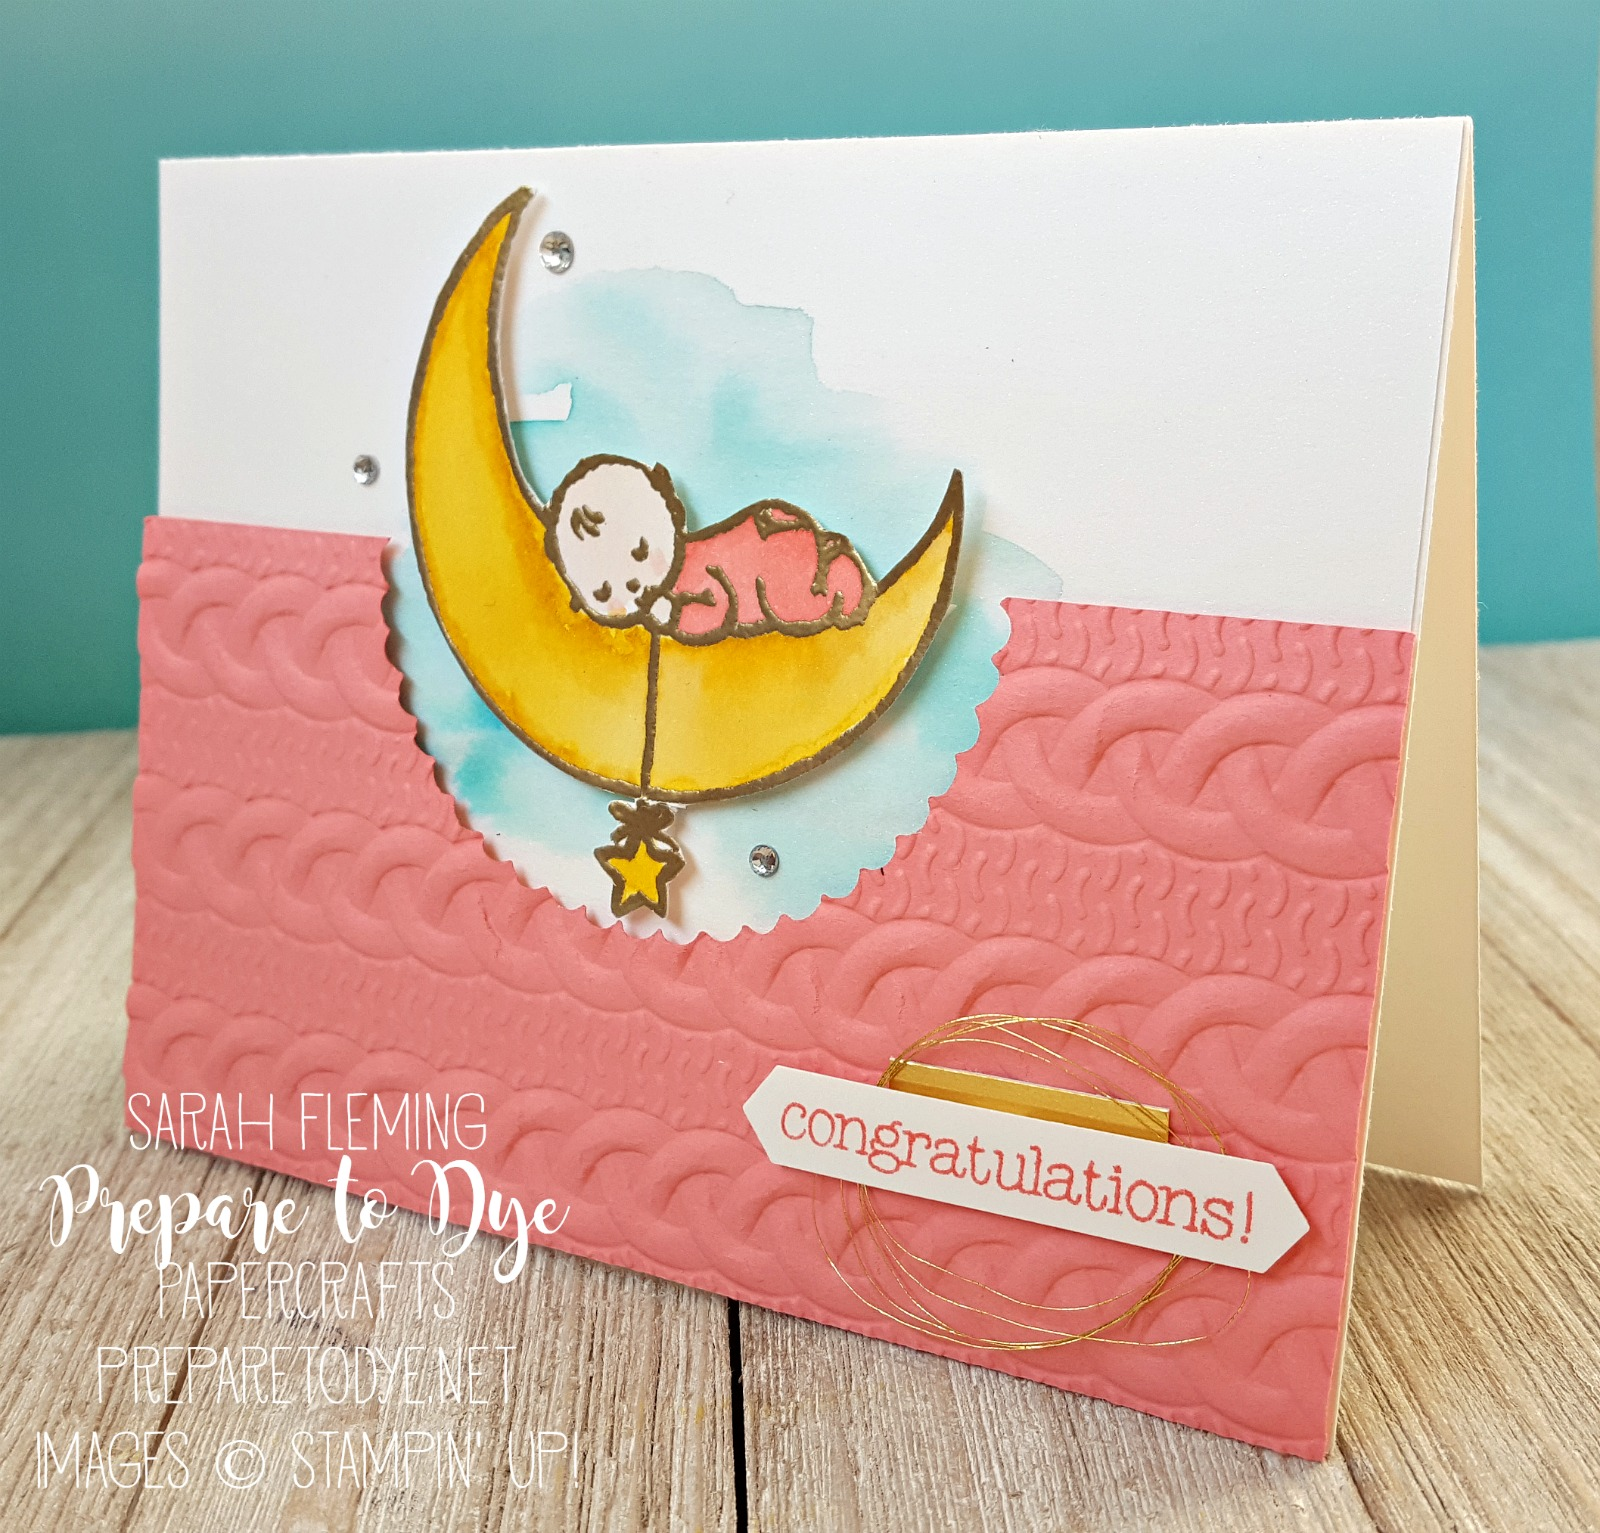 Stampin' Up! Moon Baby and Made with Love with the Cable Knit Dynamic embossing folder - watercolor wash - handmade baby card - Lesley Croghan's baby blog hop - Sarah Fleming - Prepare to Dye Papercrafts